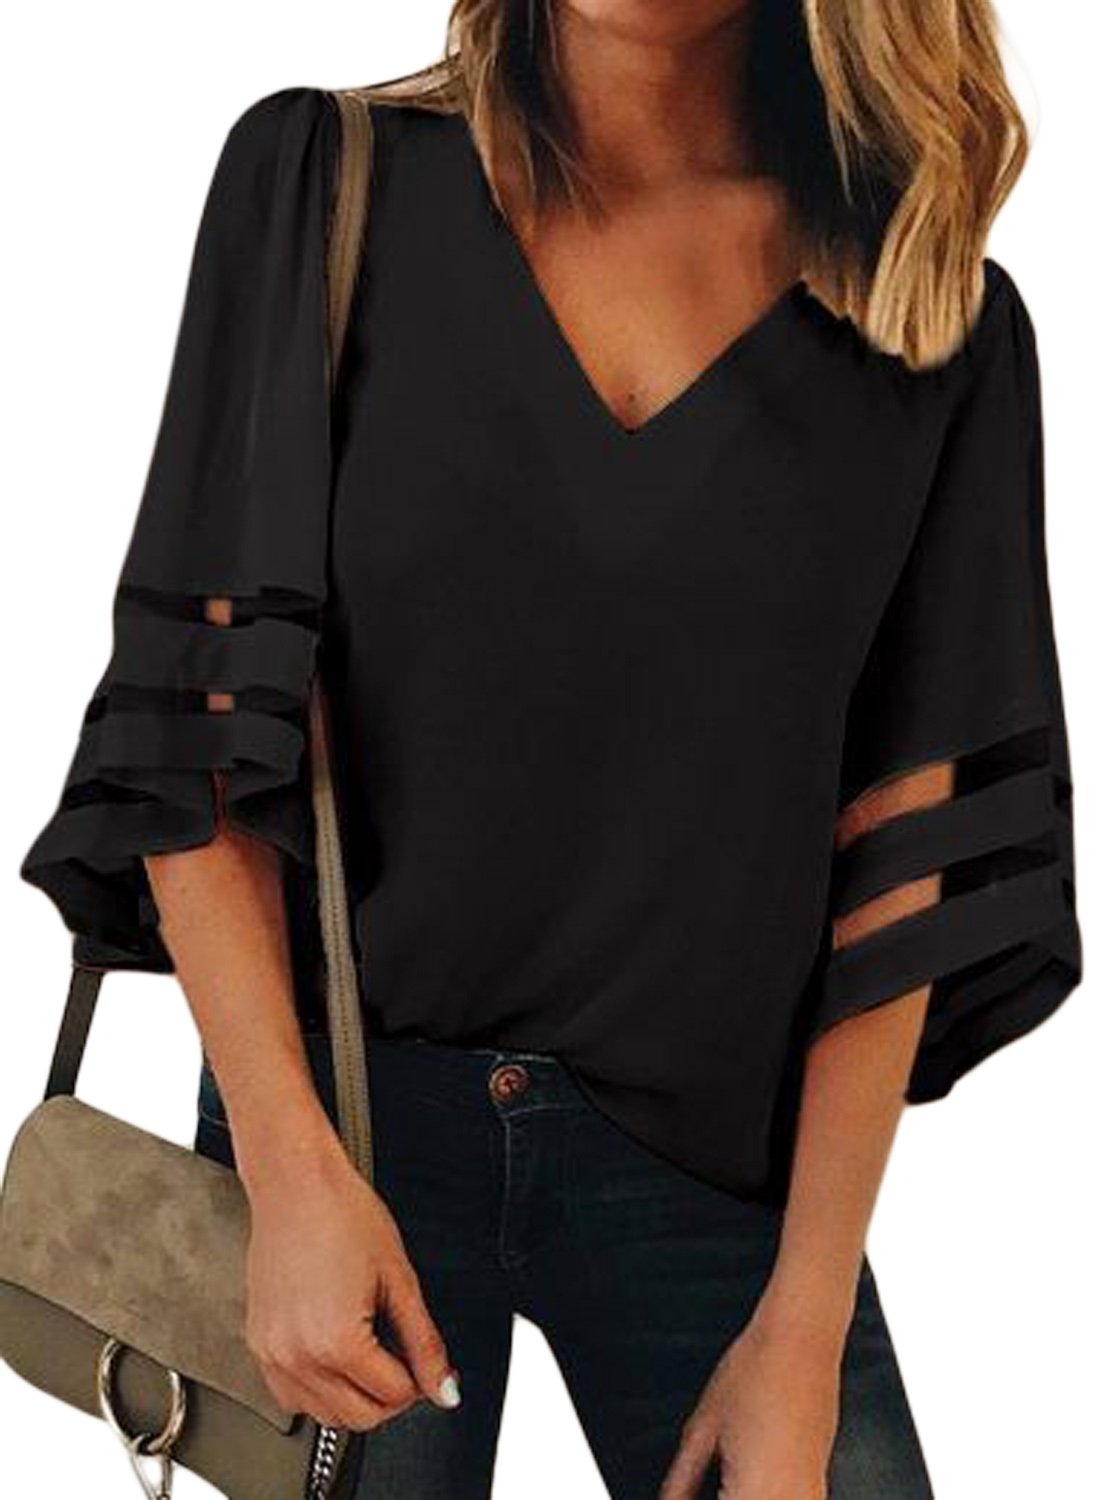 LOSRLY Women V Neck 3/4 Bell Sleeve Casual Blouses and Tops Mesh Patchwork Shirts-Black XL 16 18